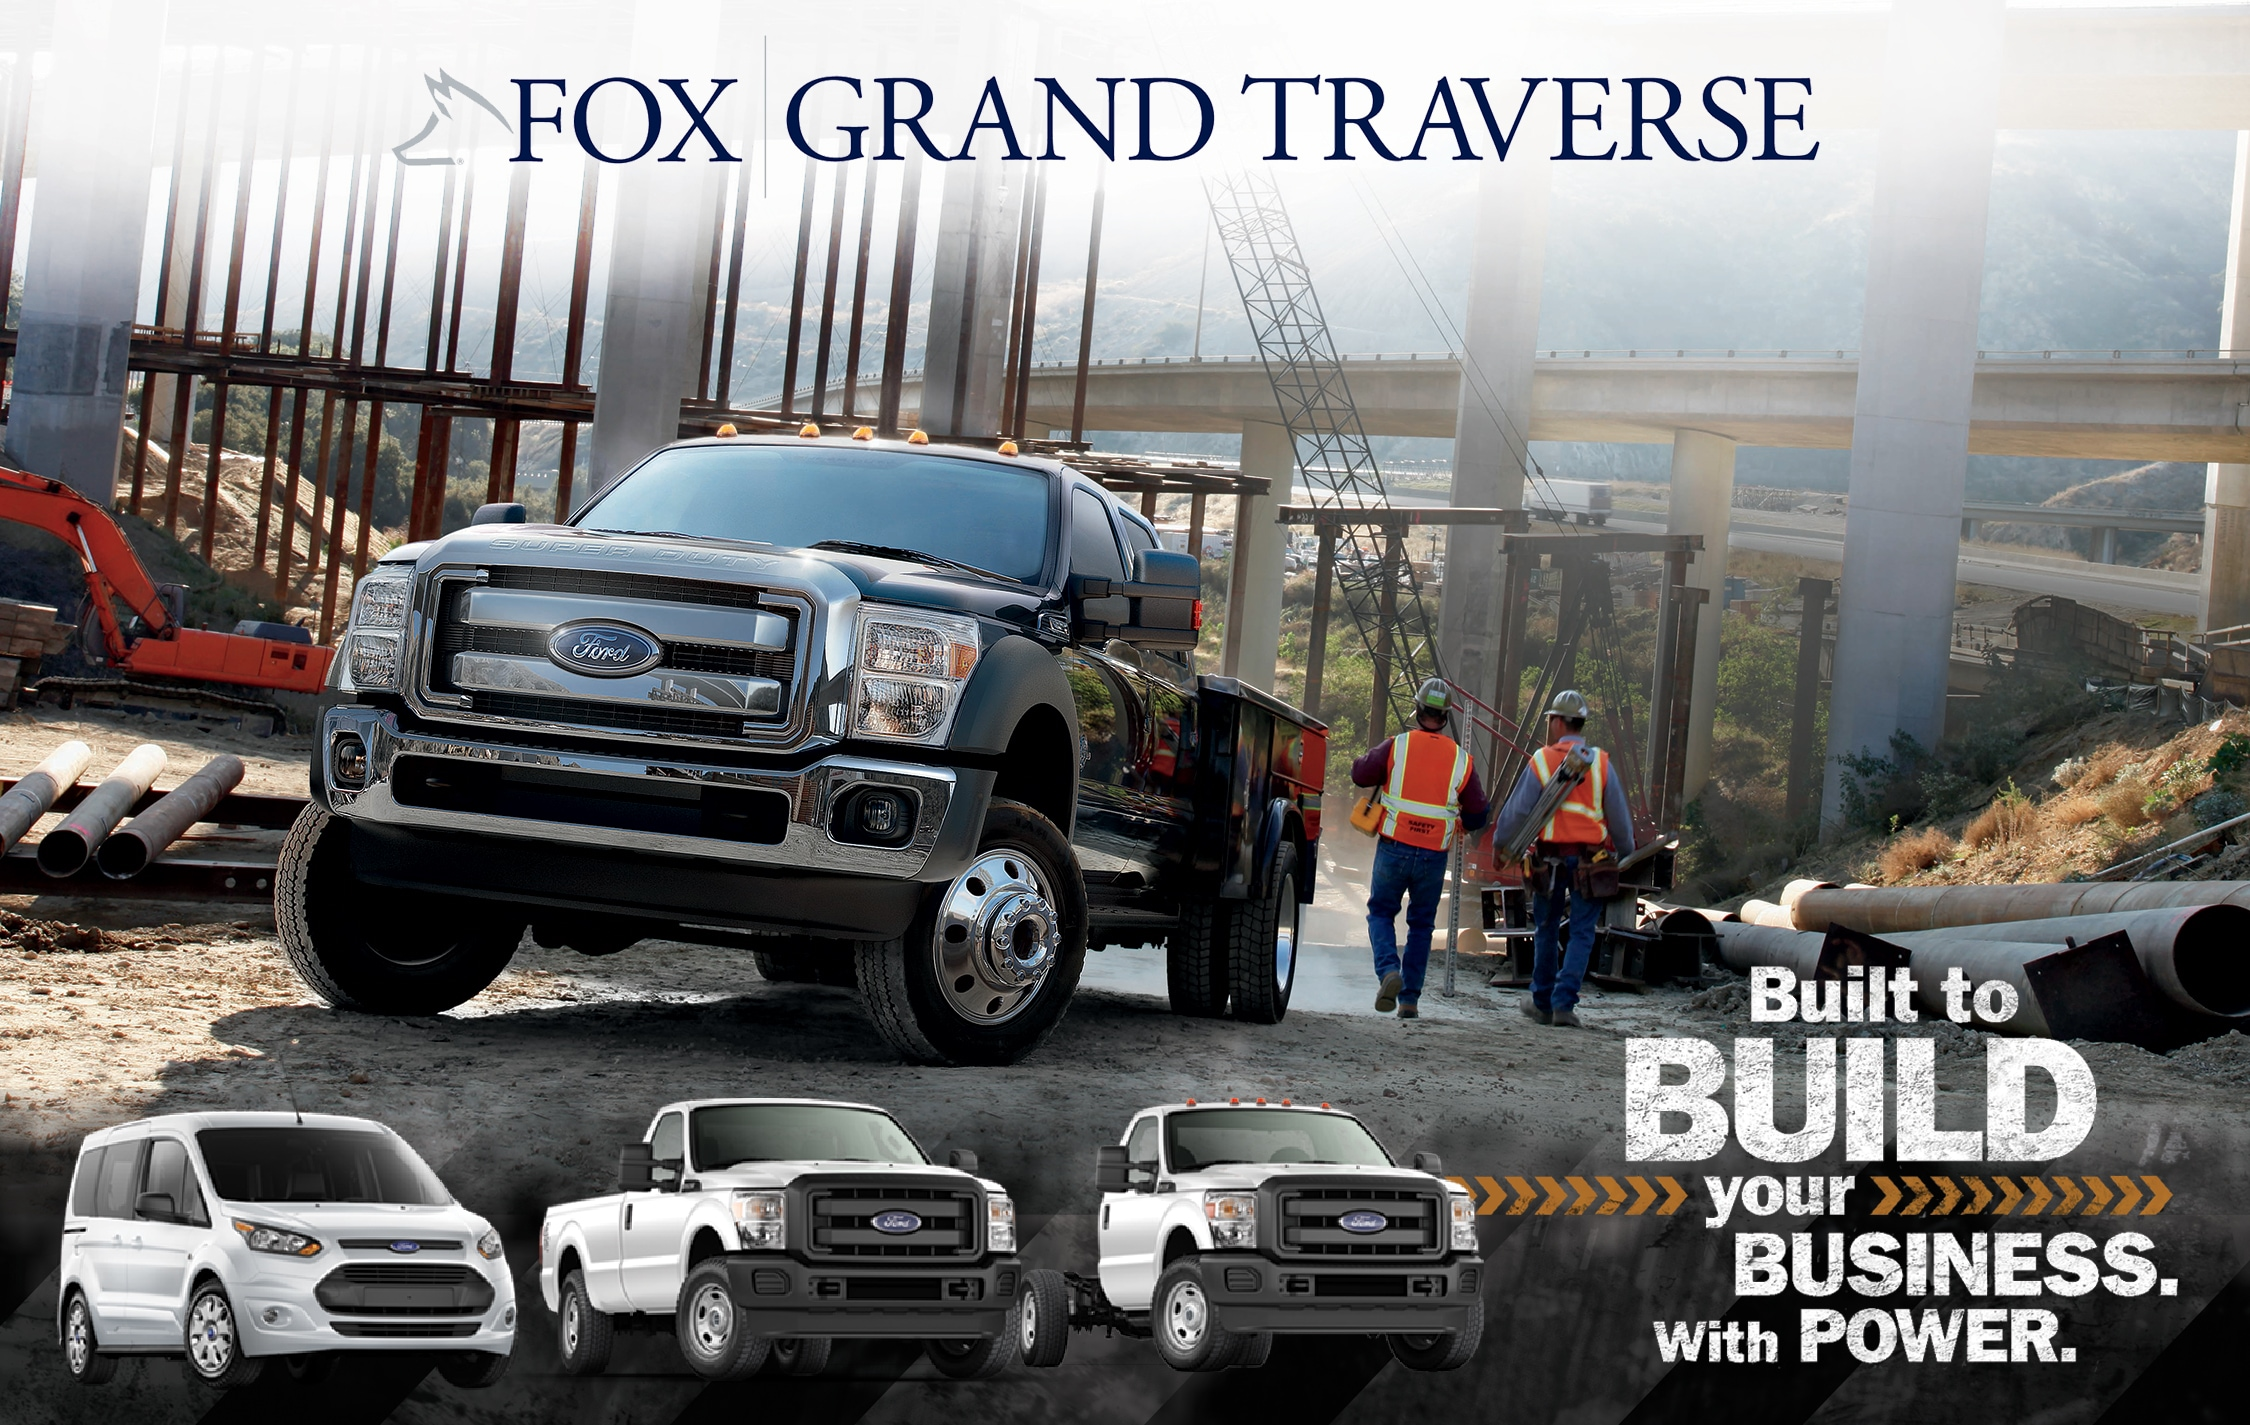 commercial vehicles for sale in traverse city mi fox grand traverse ford. Black Bedroom Furniture Sets. Home Design Ideas